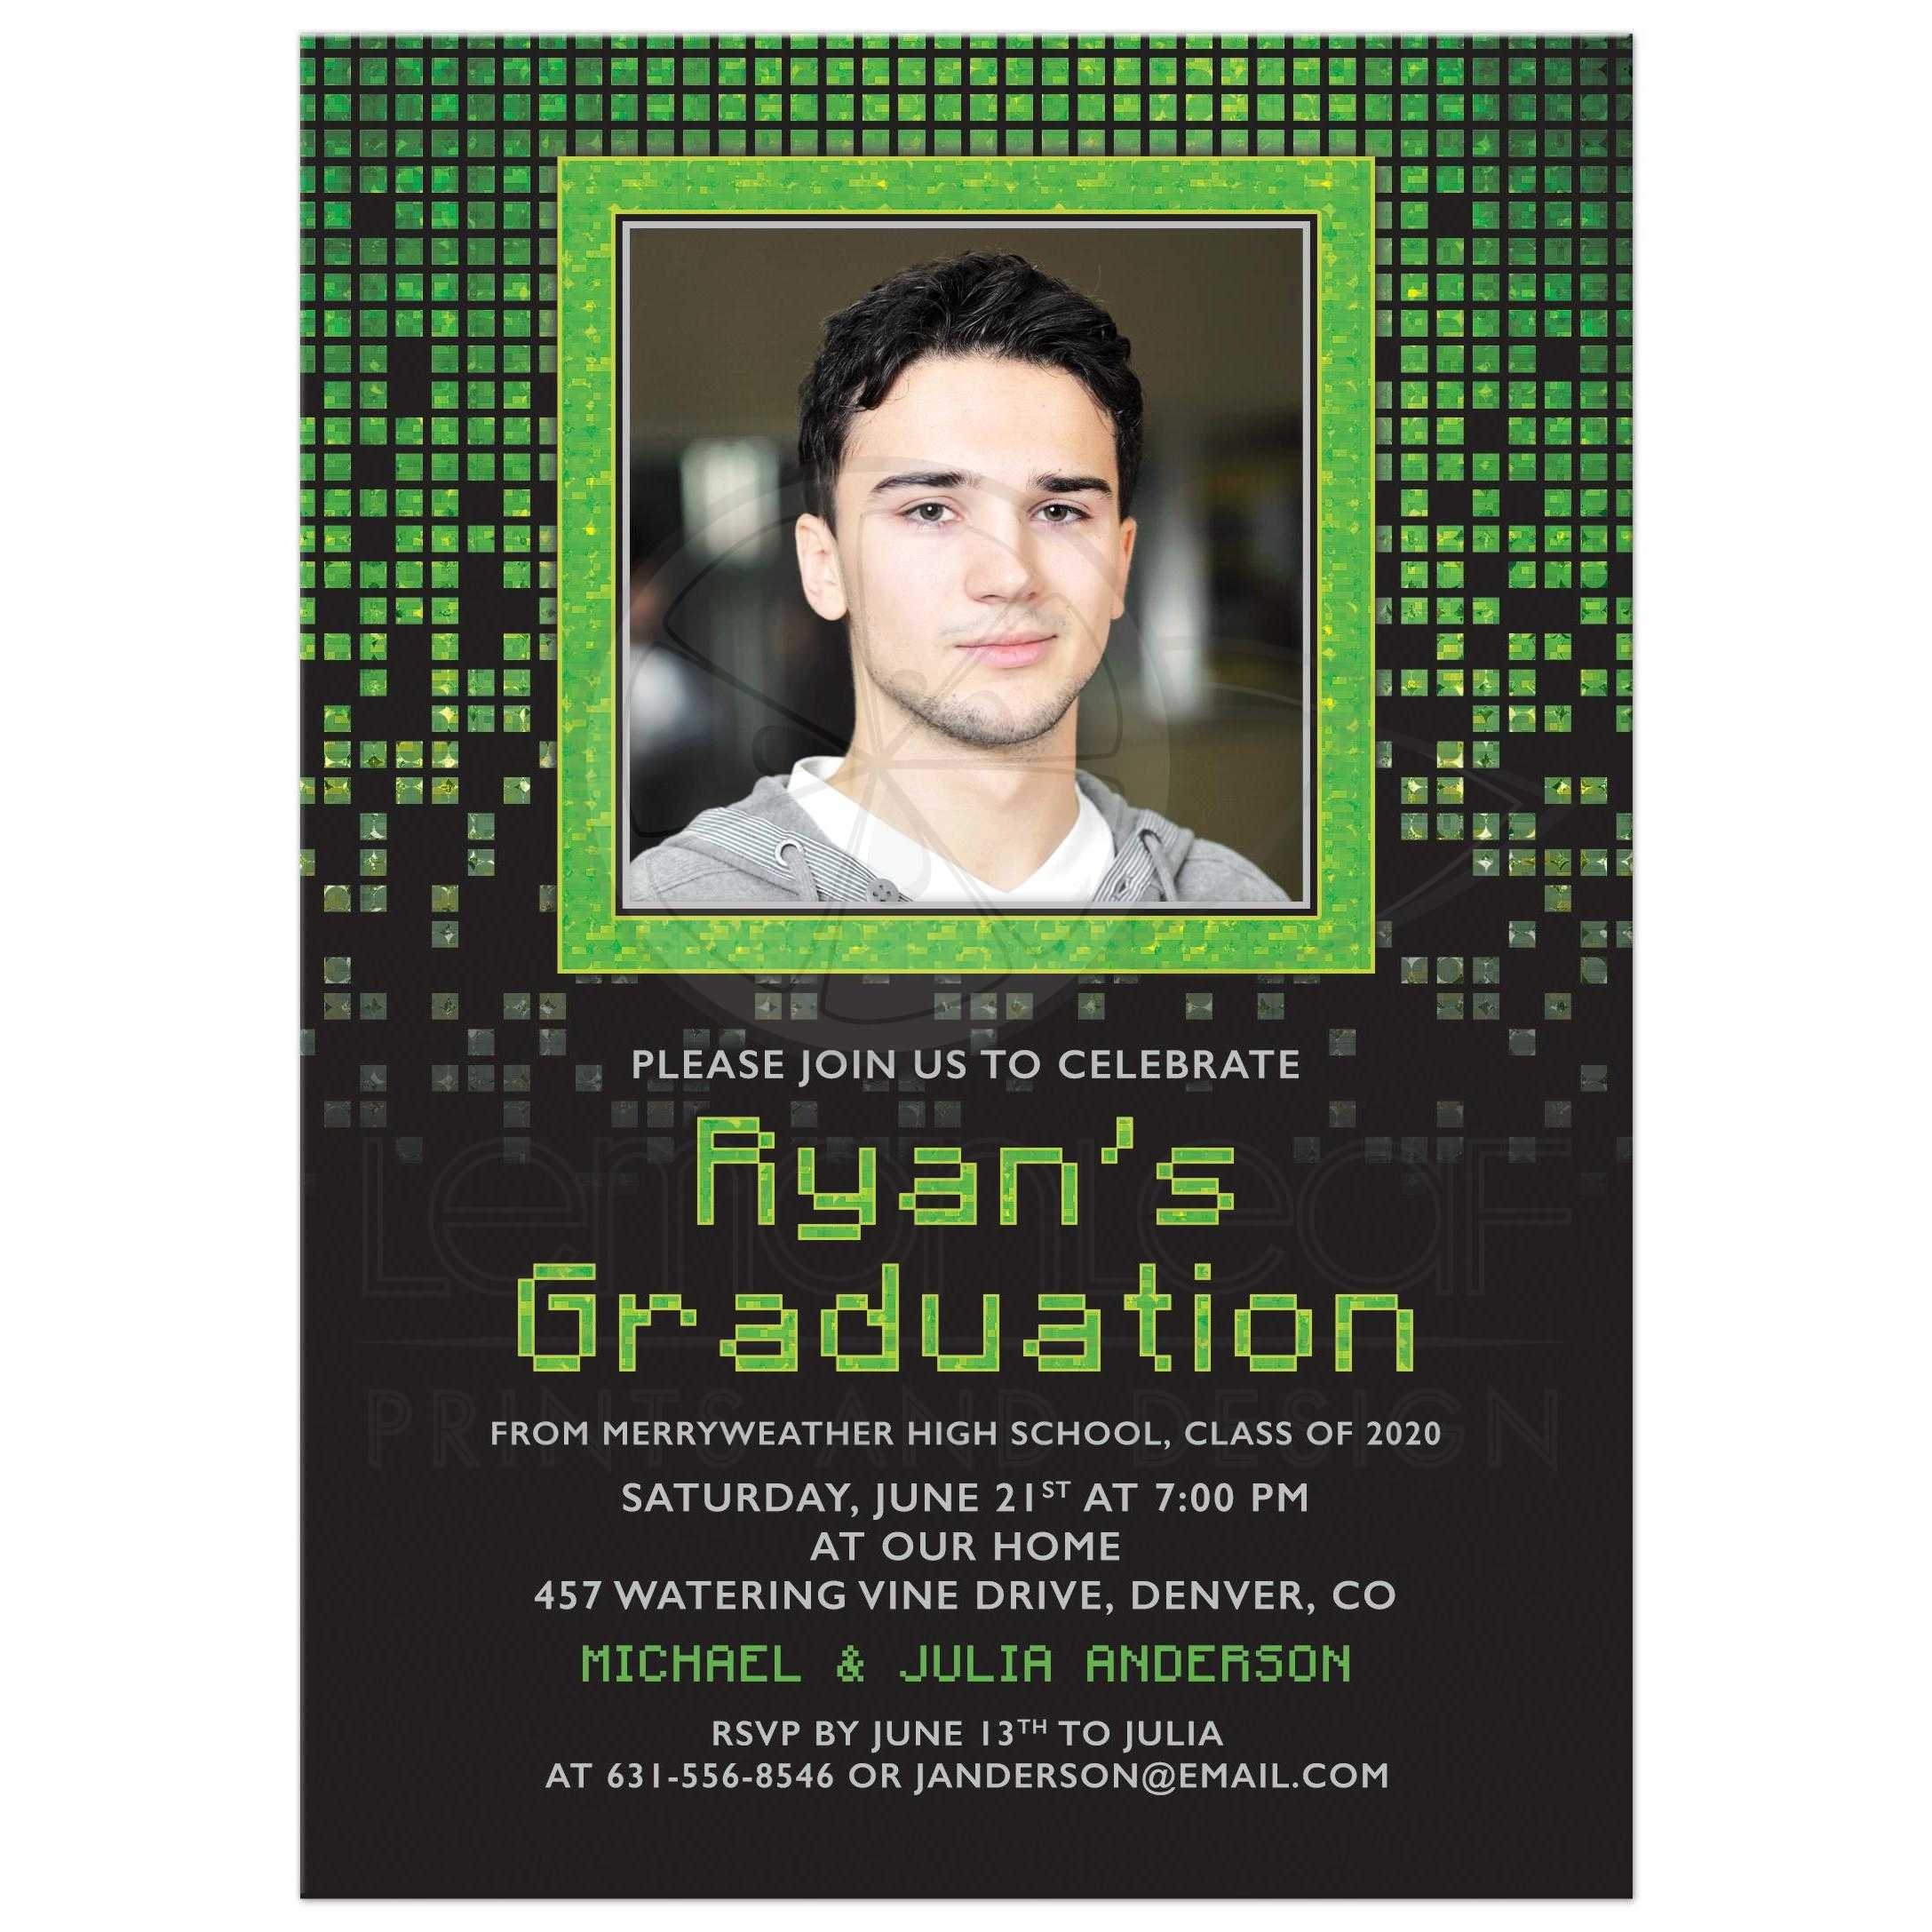 Gamer Computer Green Photo Graduation Invitation | Video Game Pixels